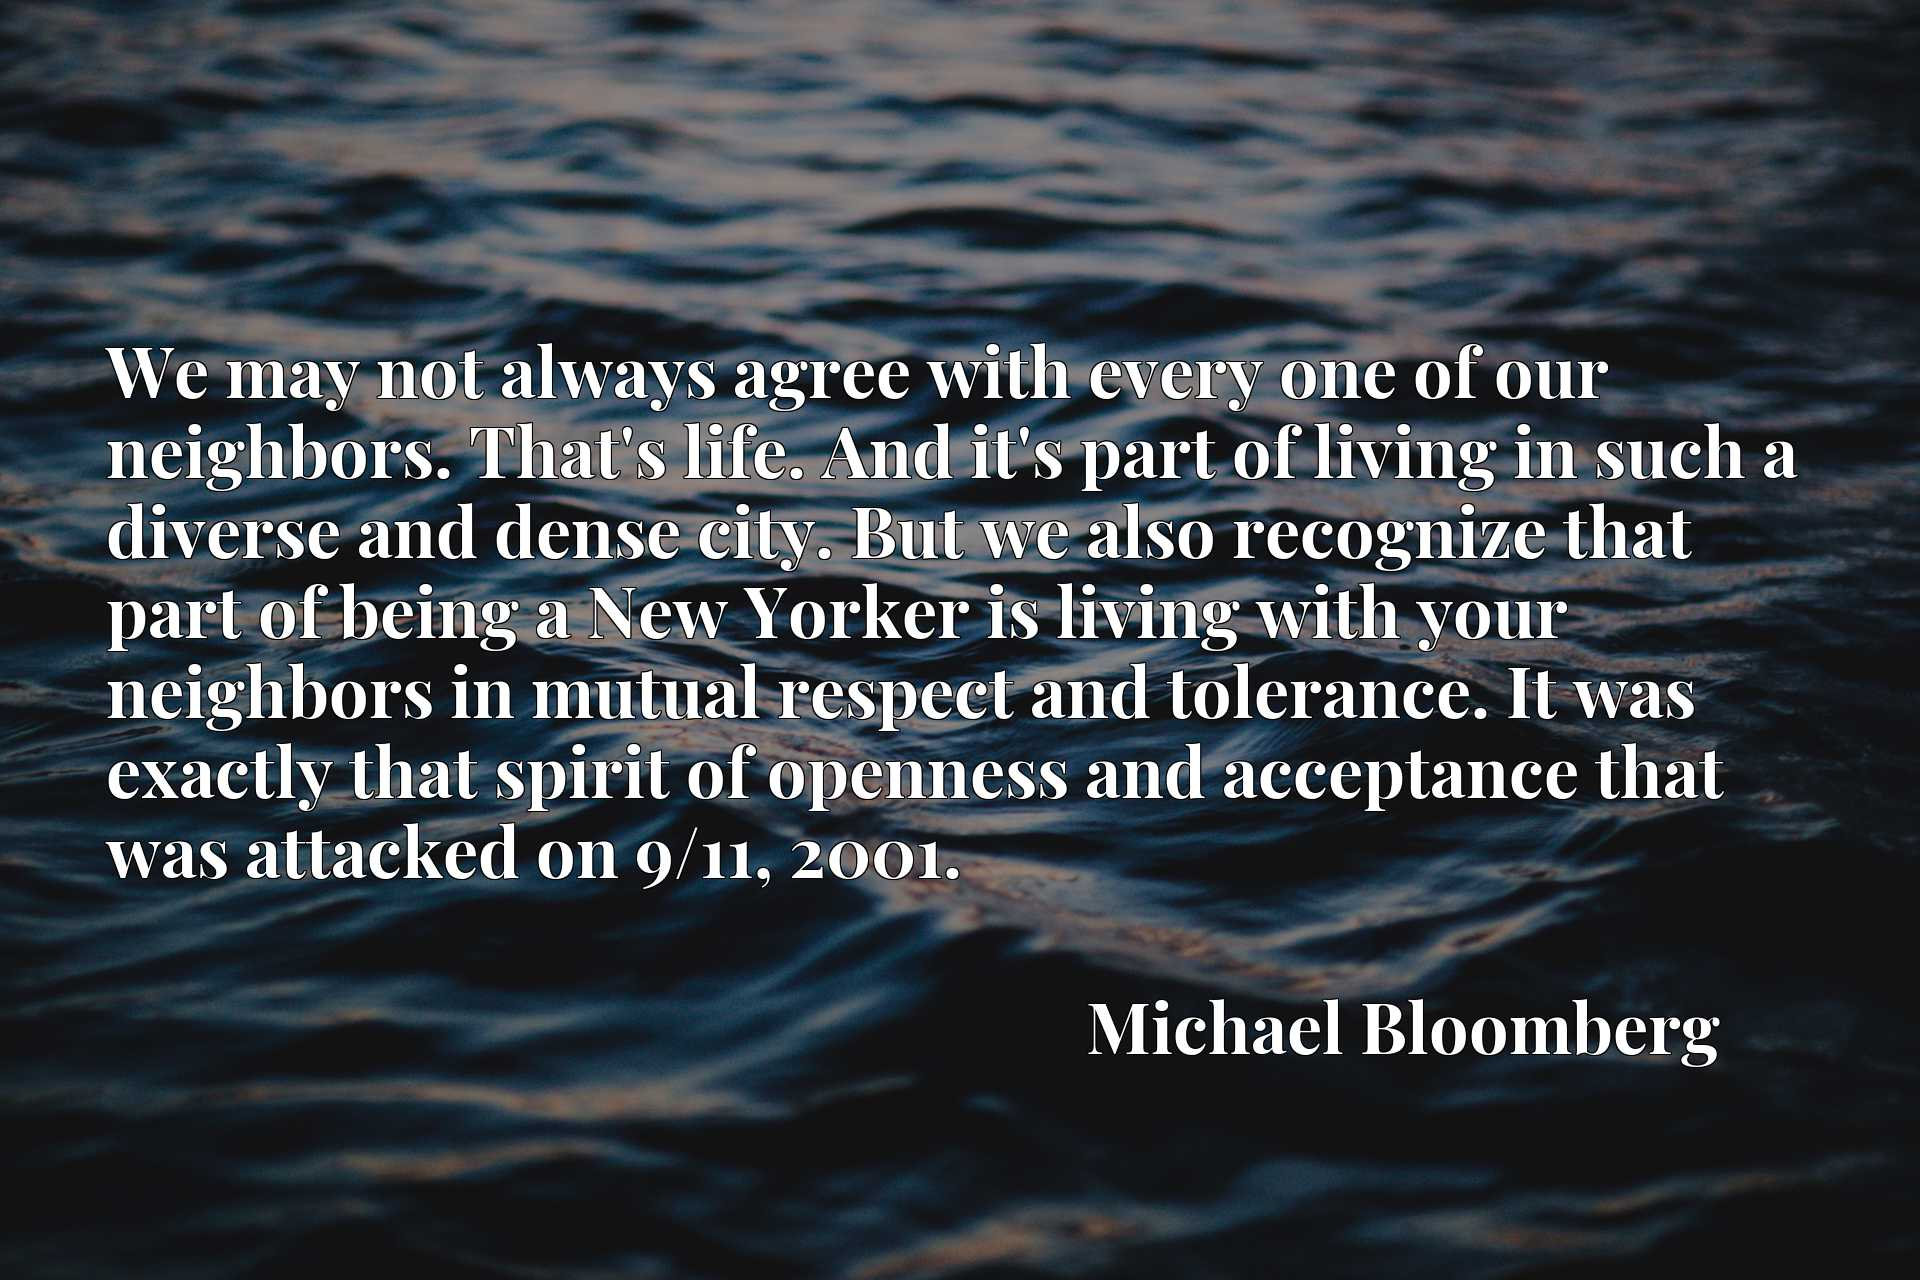 We may not always agree with every one of our neighbors. That's life. And it's part of living in such a diverse and dense city. But we also recognize that part of being a New Yorker is living with your neighbors in mutual respect and tolerance. It was exactly that spirit of openness and acceptance that was attacked on 9/11, 2001.